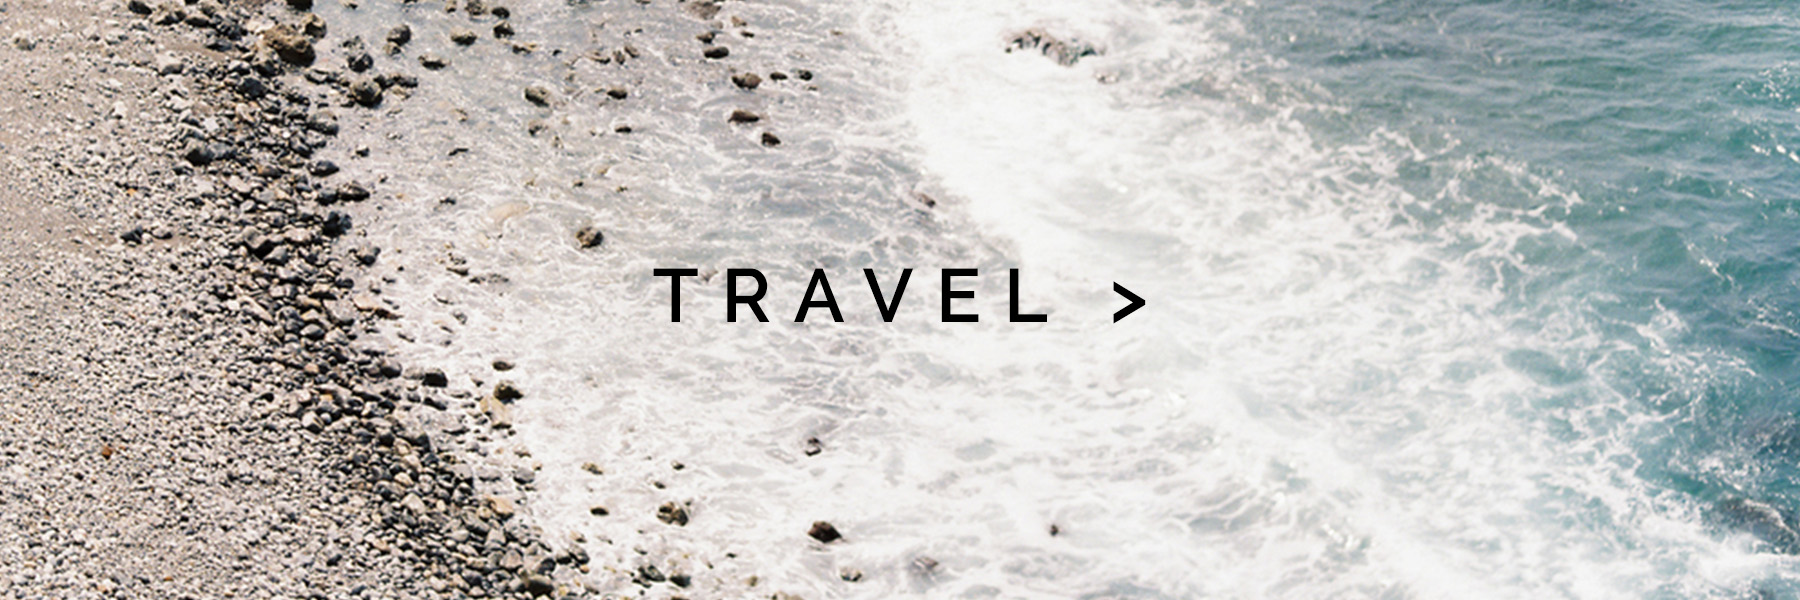 AmandaMarie_PortfolioHeaders_v3_0002_travel.jpg